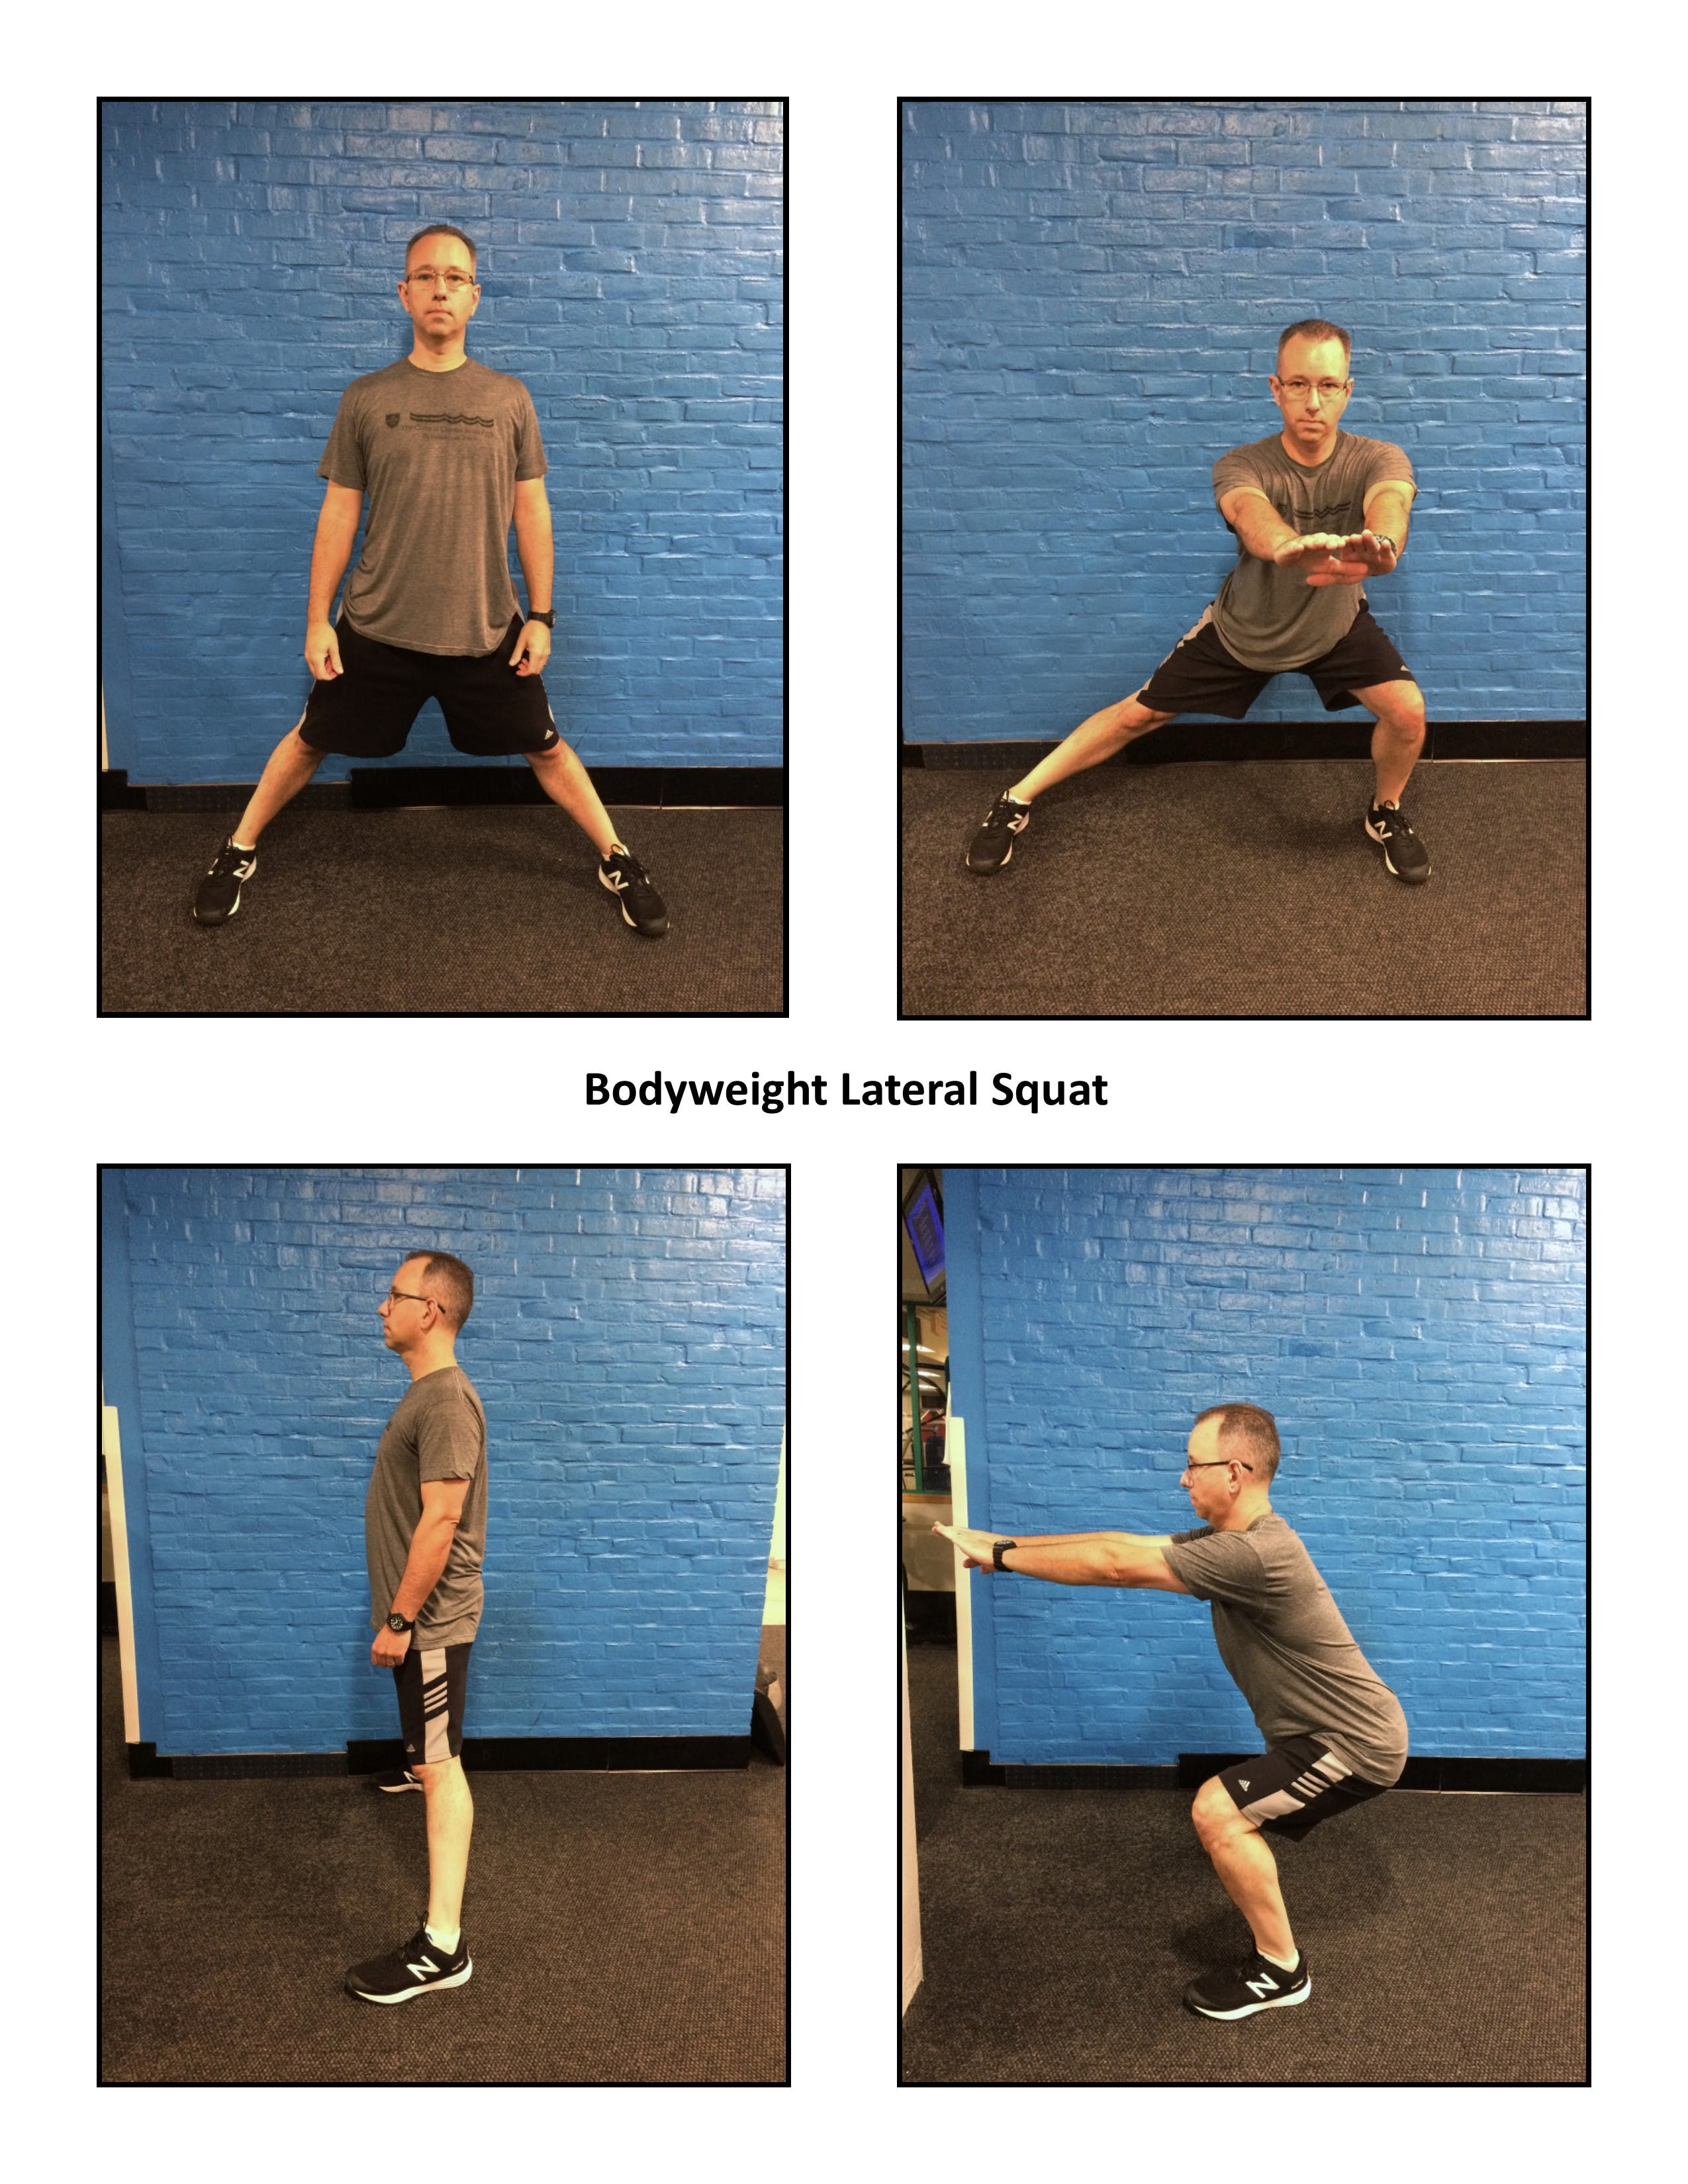 male performing later squat